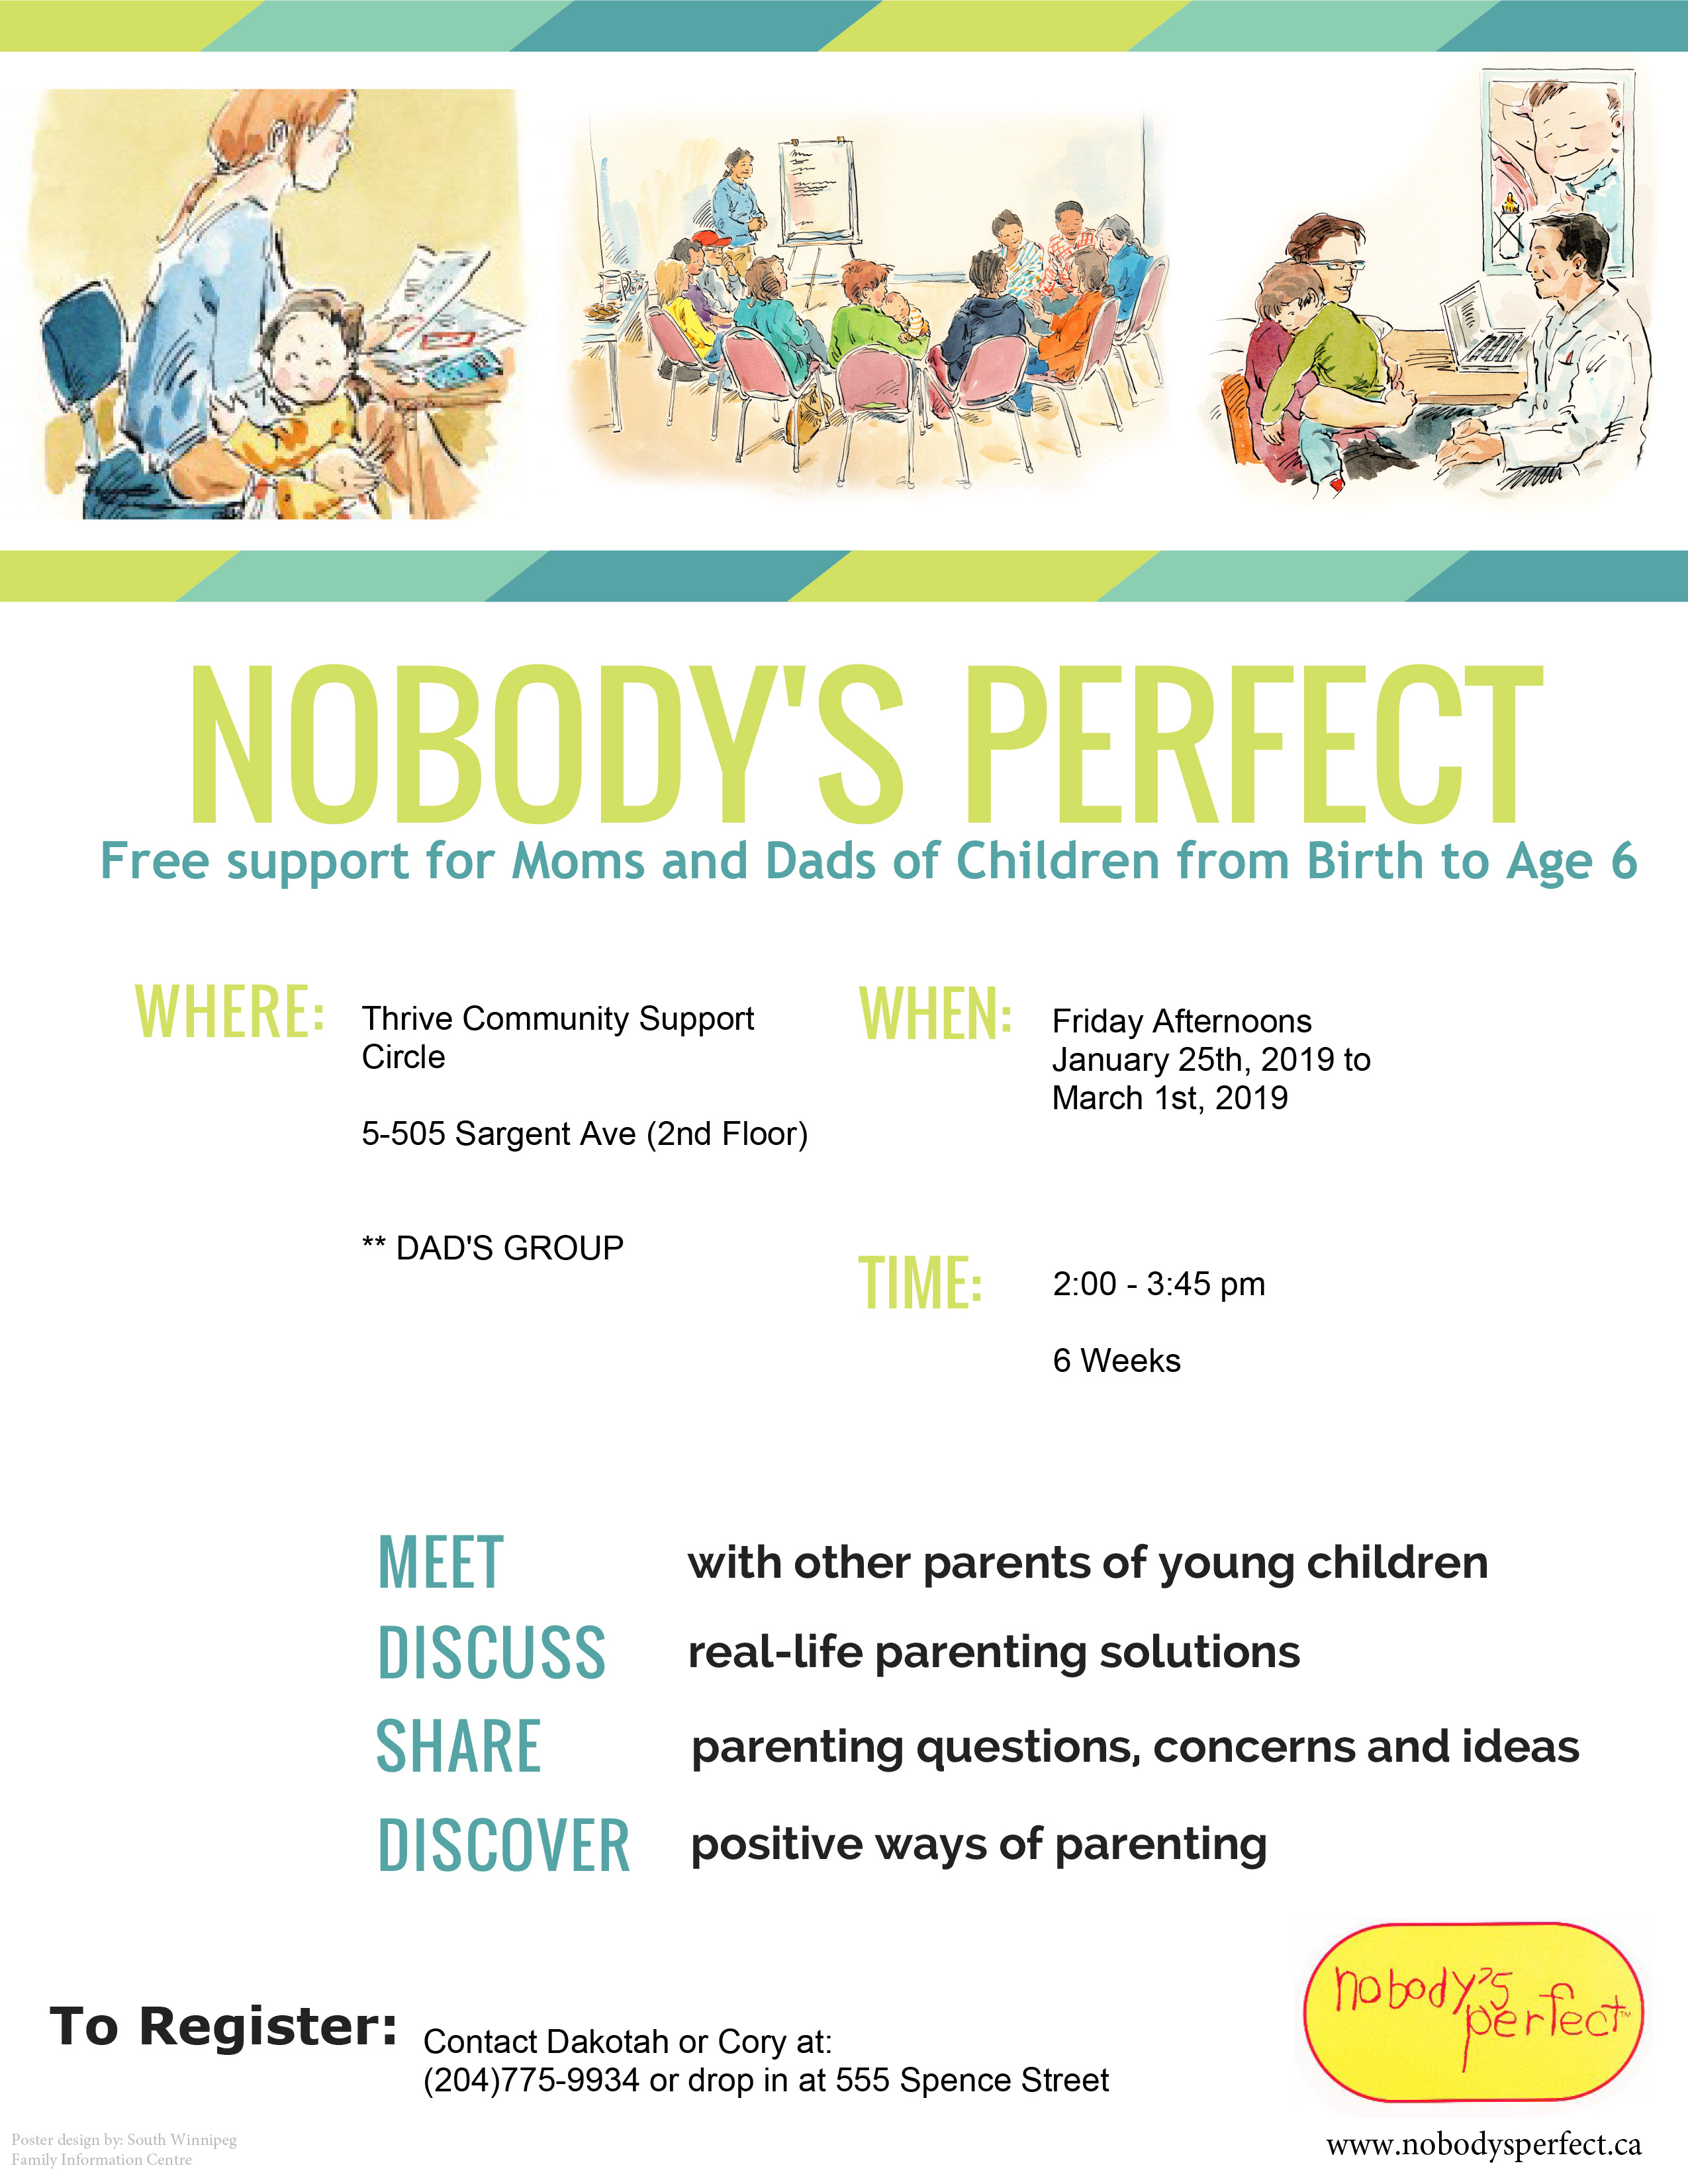 Nobody's Perfect Poster - free support for moms and dads with children from birth to Age 6